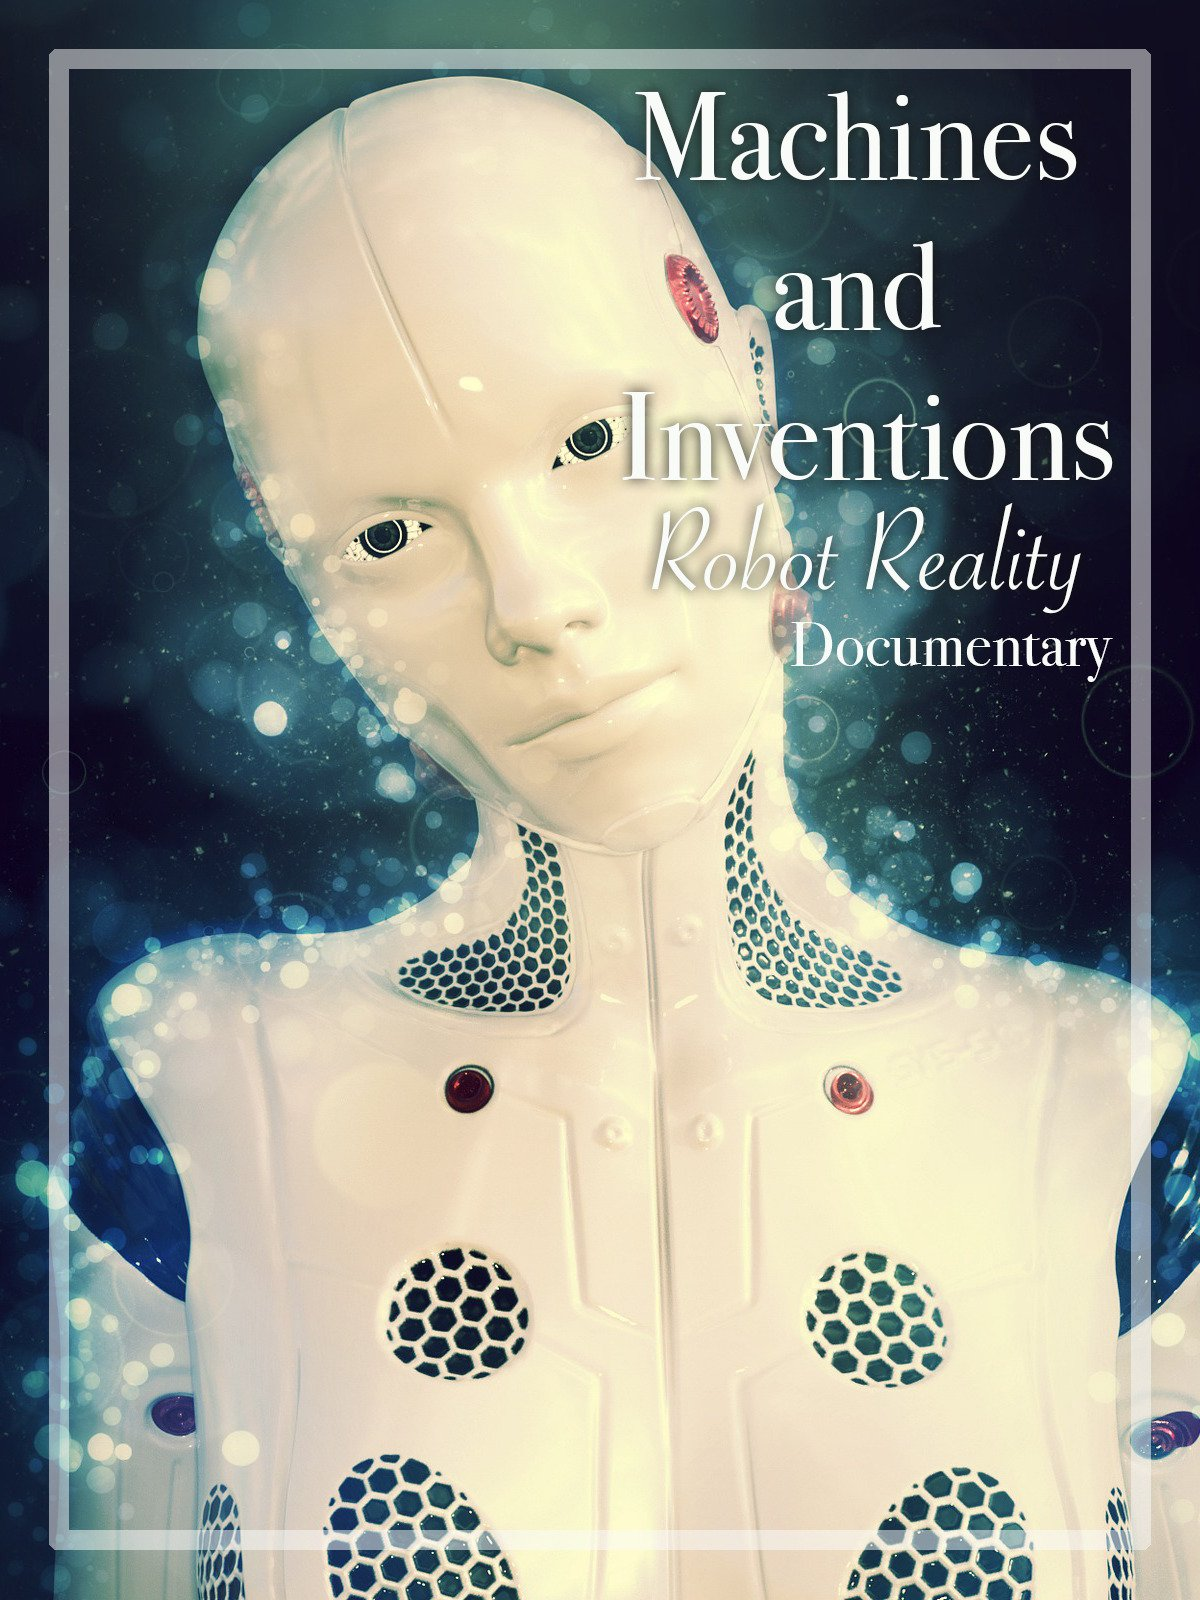 Machines and Inventions Robot Reality Documentary